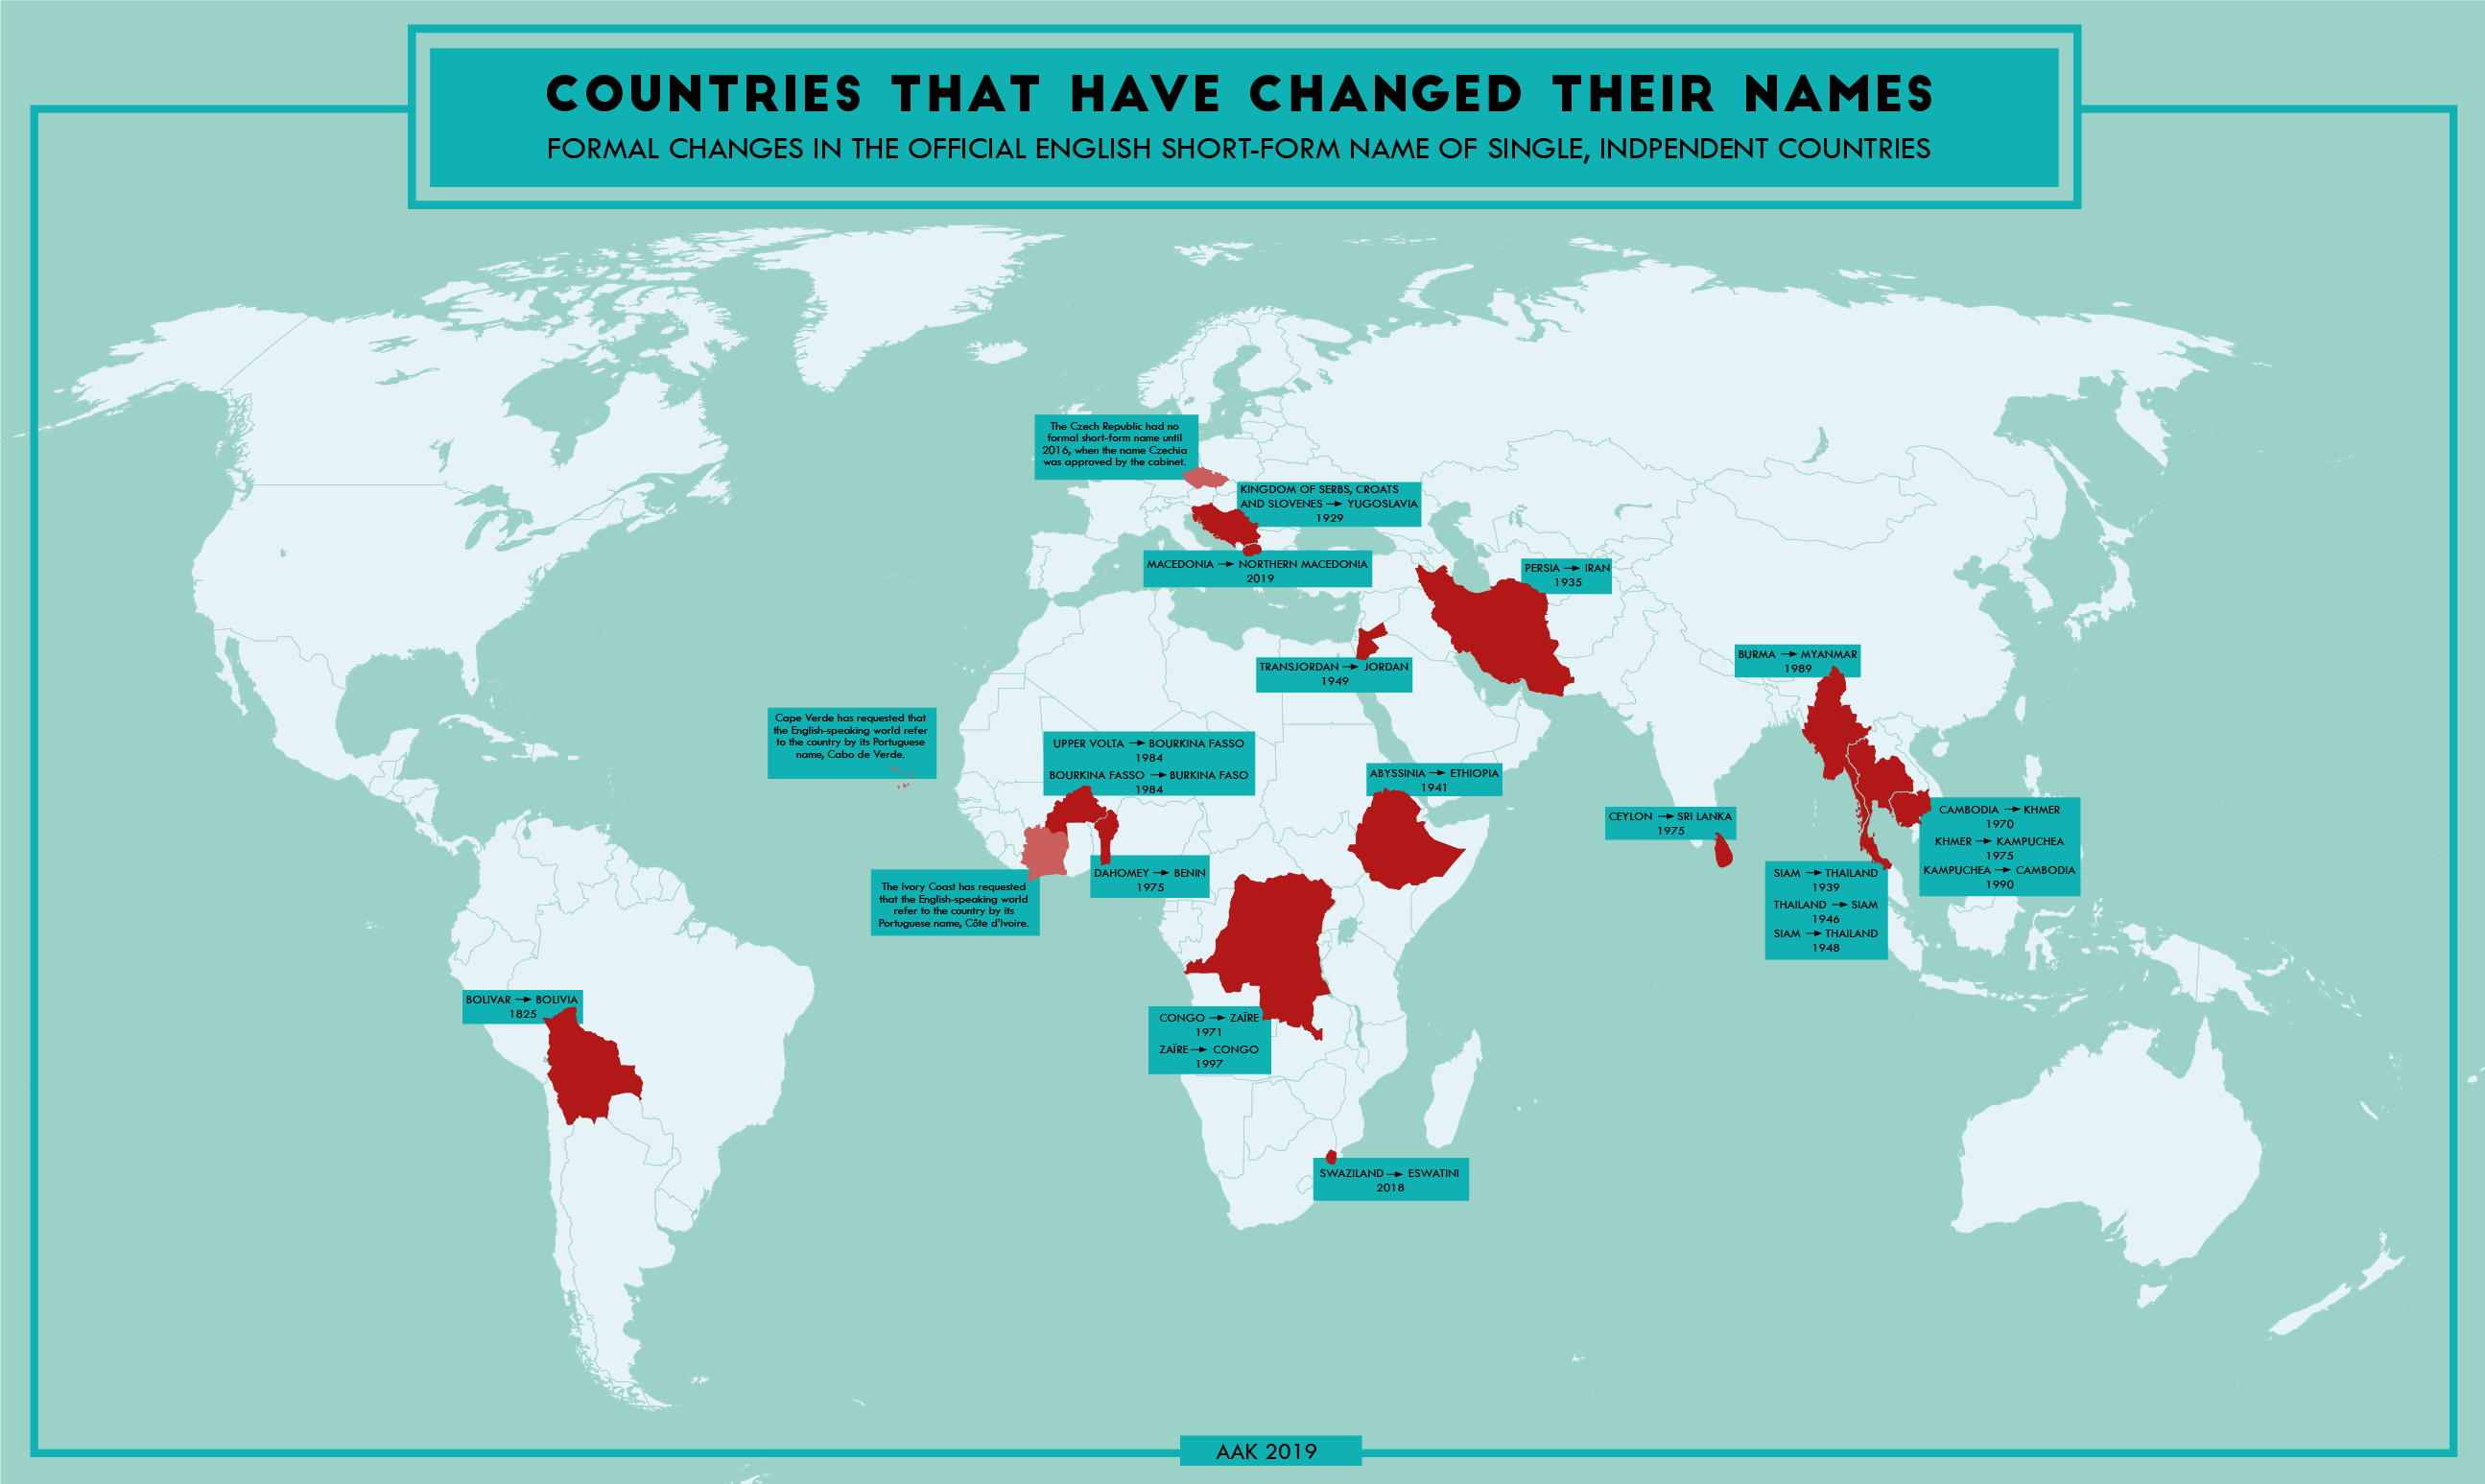 Countries that have changed their names